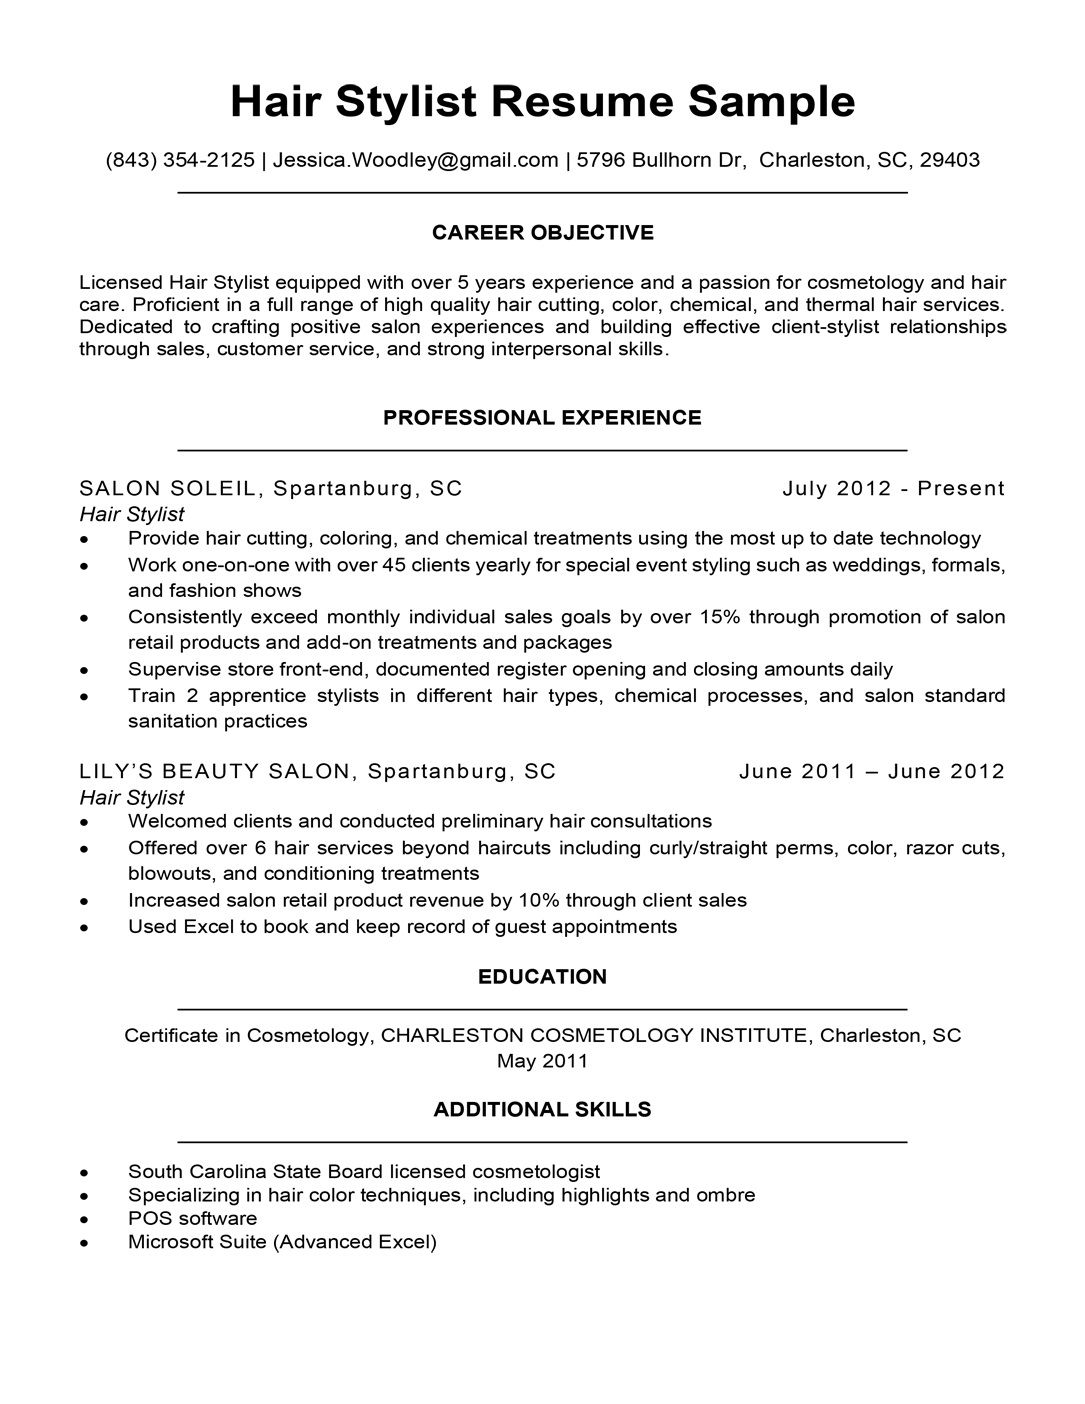 007 Beautiful Hair Stylist Resume Template High Definition  Word Free DownloadFull